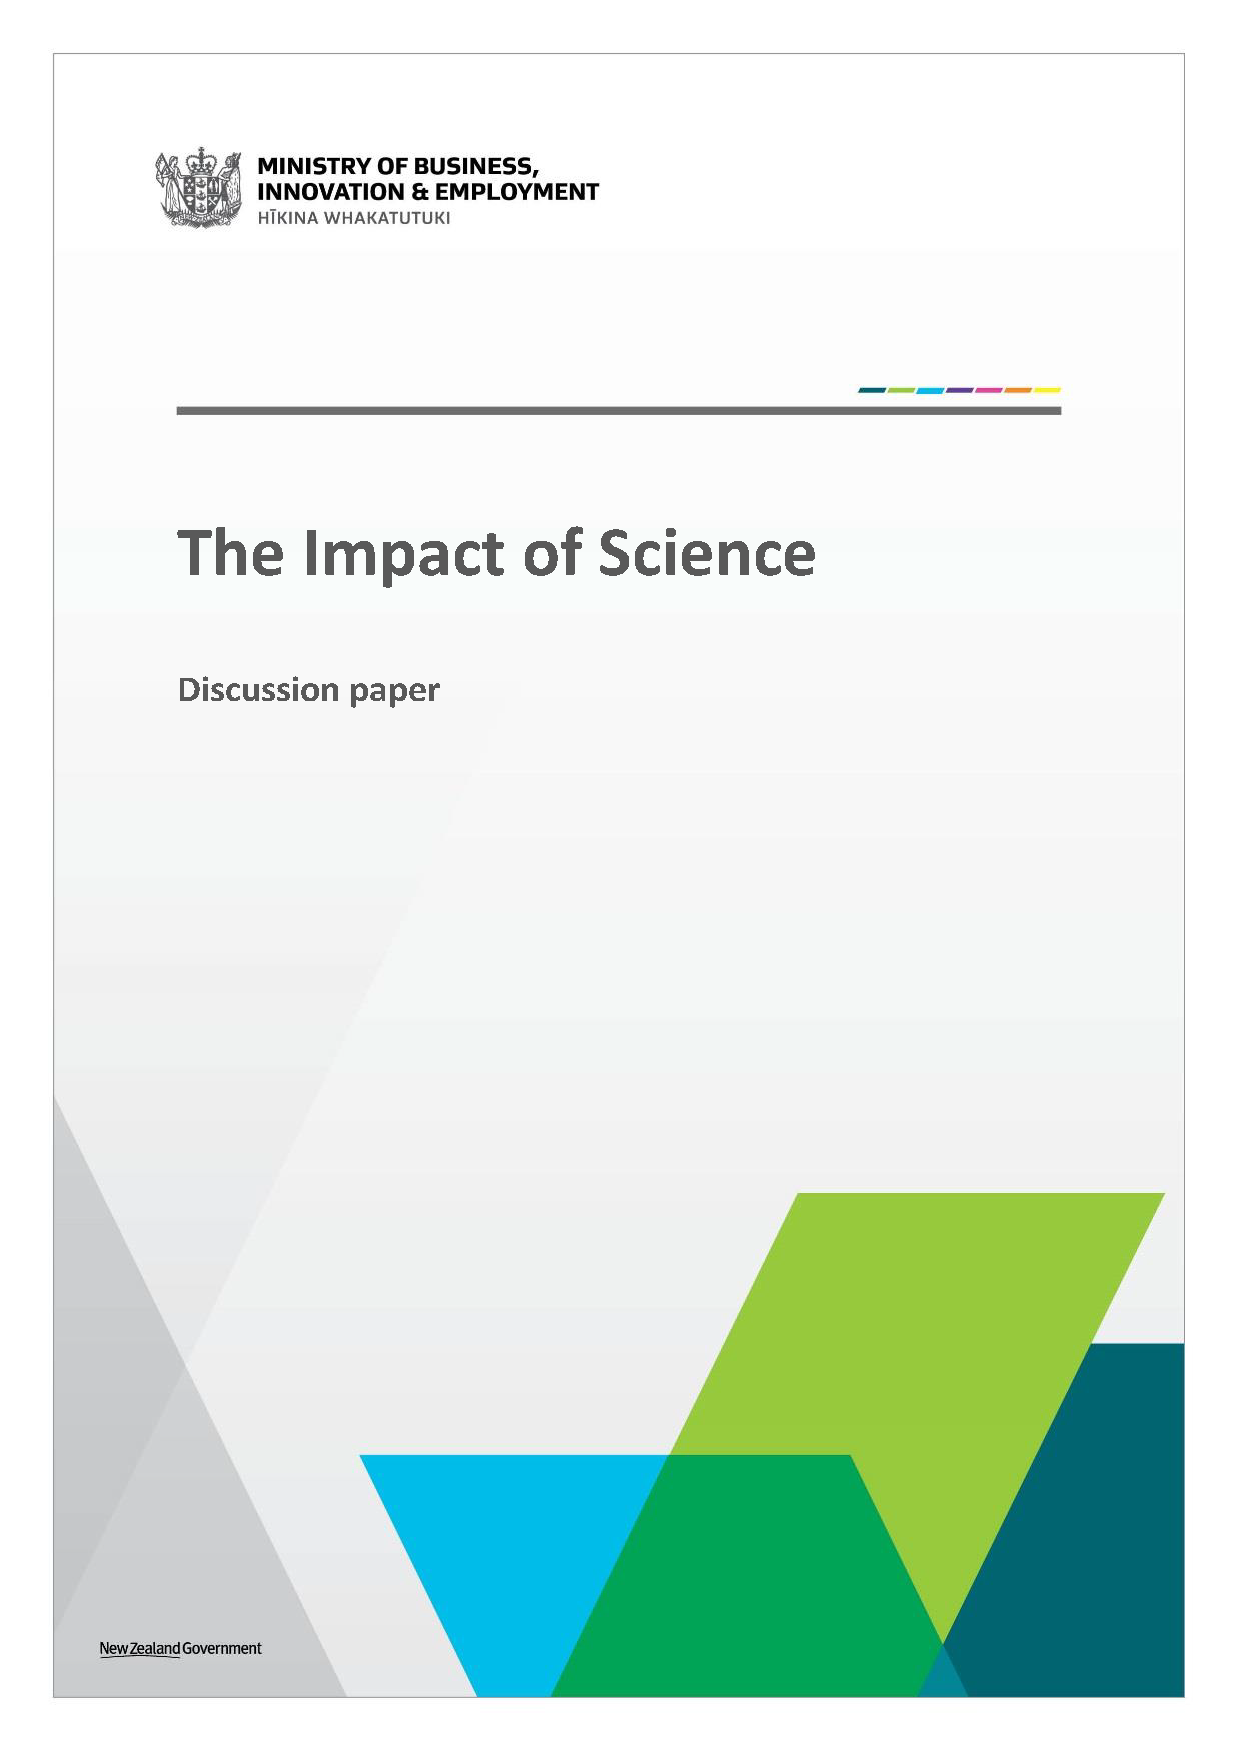 MBIE Impact of Science discussion paper June 2017